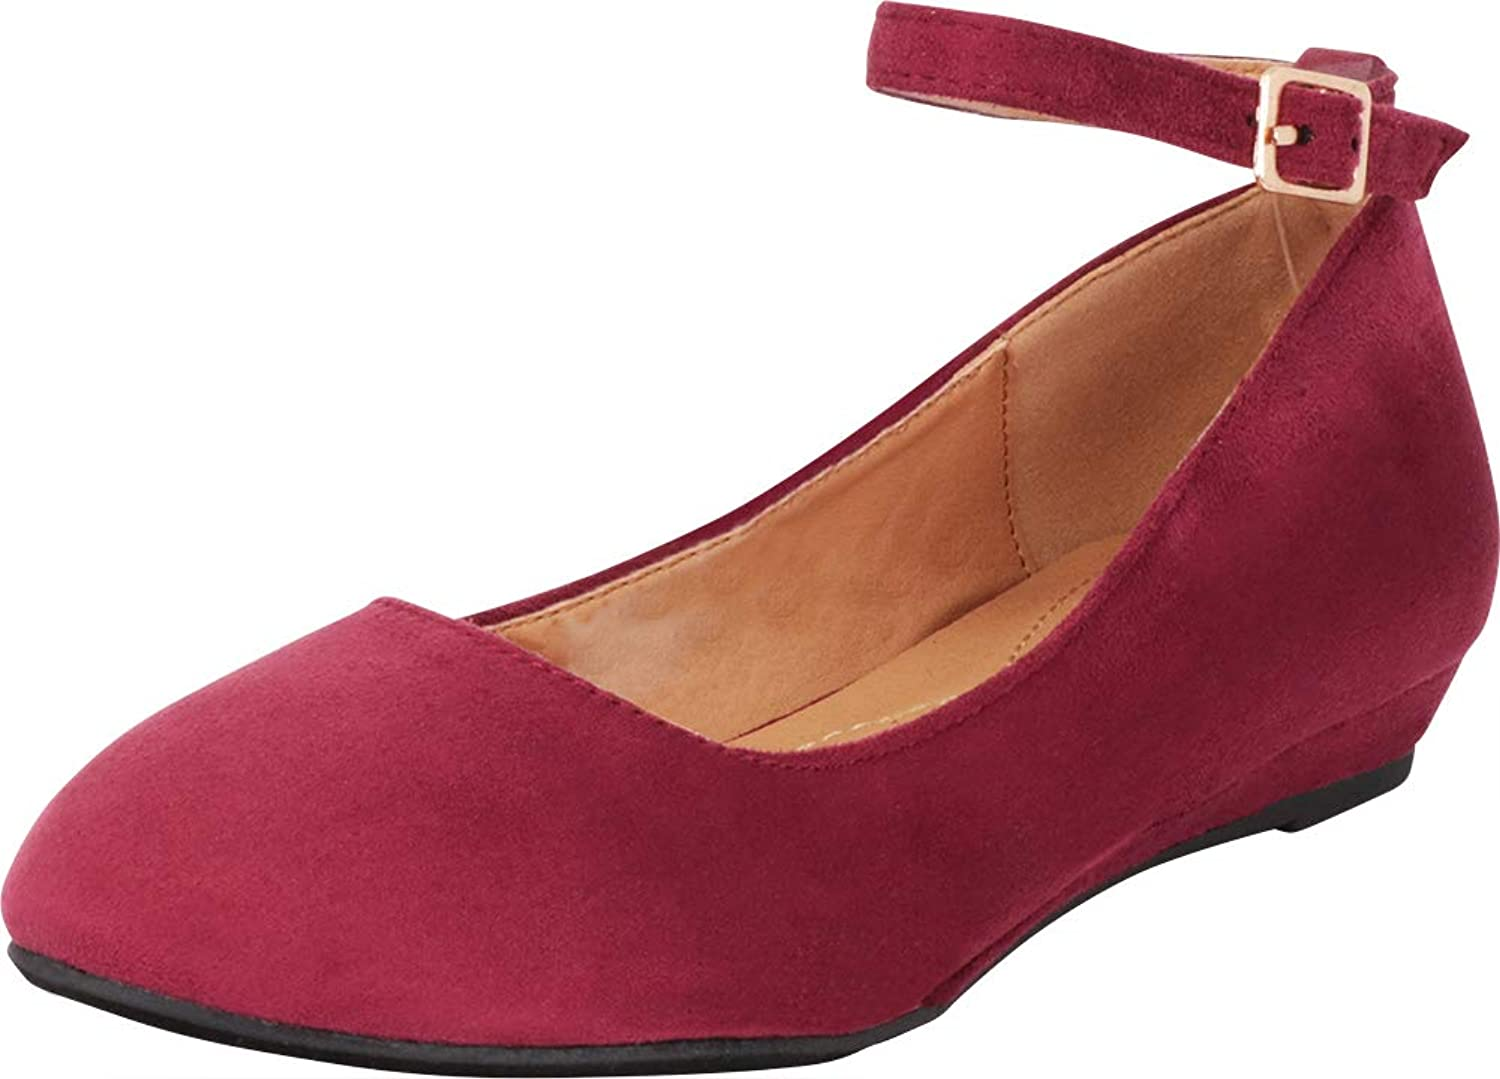 Cambridge Select Women's Round Toe Buckled Ankle Strap Low Wedge Ballet Flat